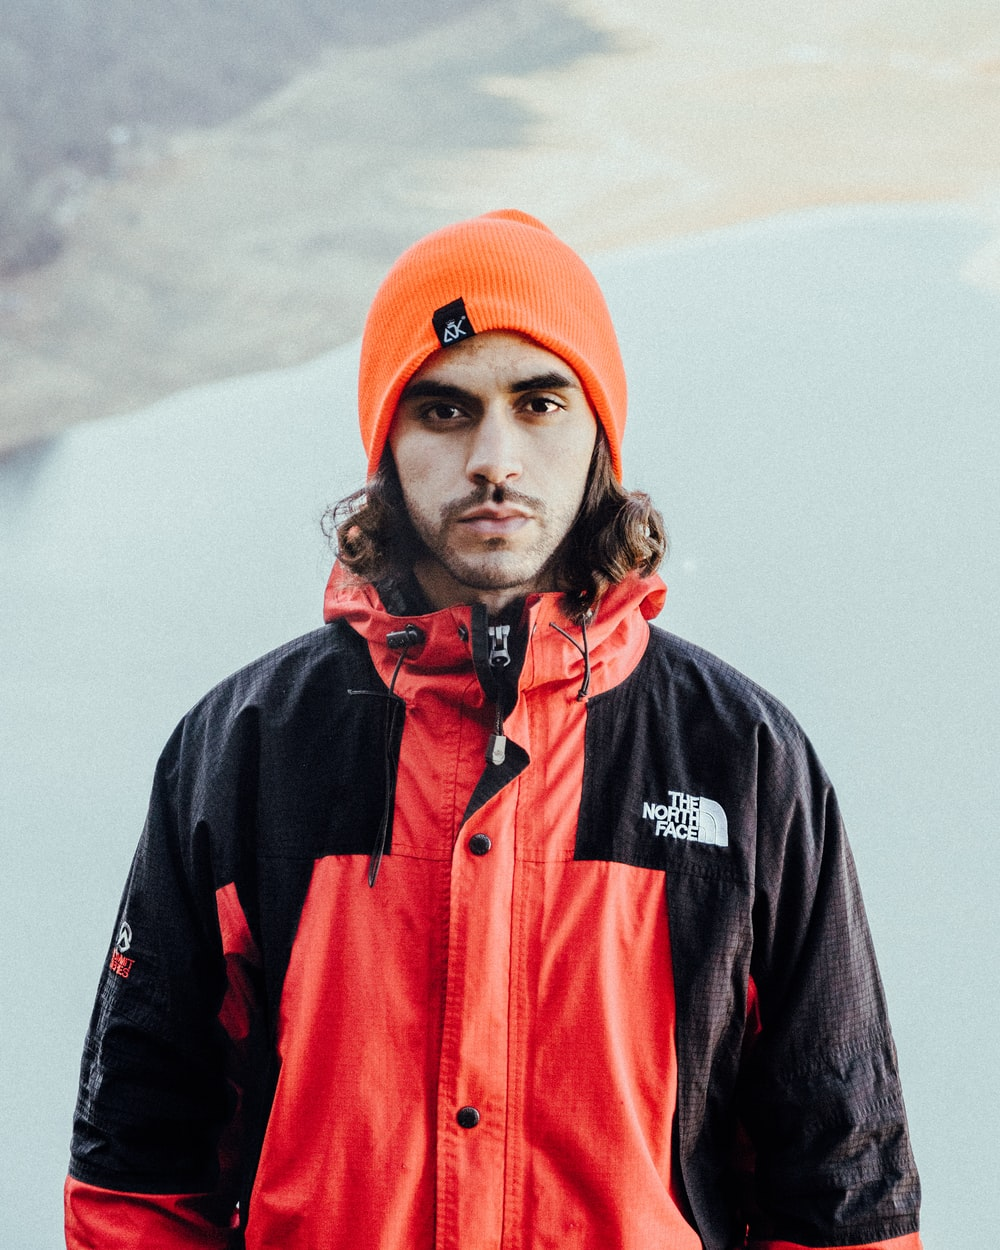 man in black and red zip up jacket and orange knit cap